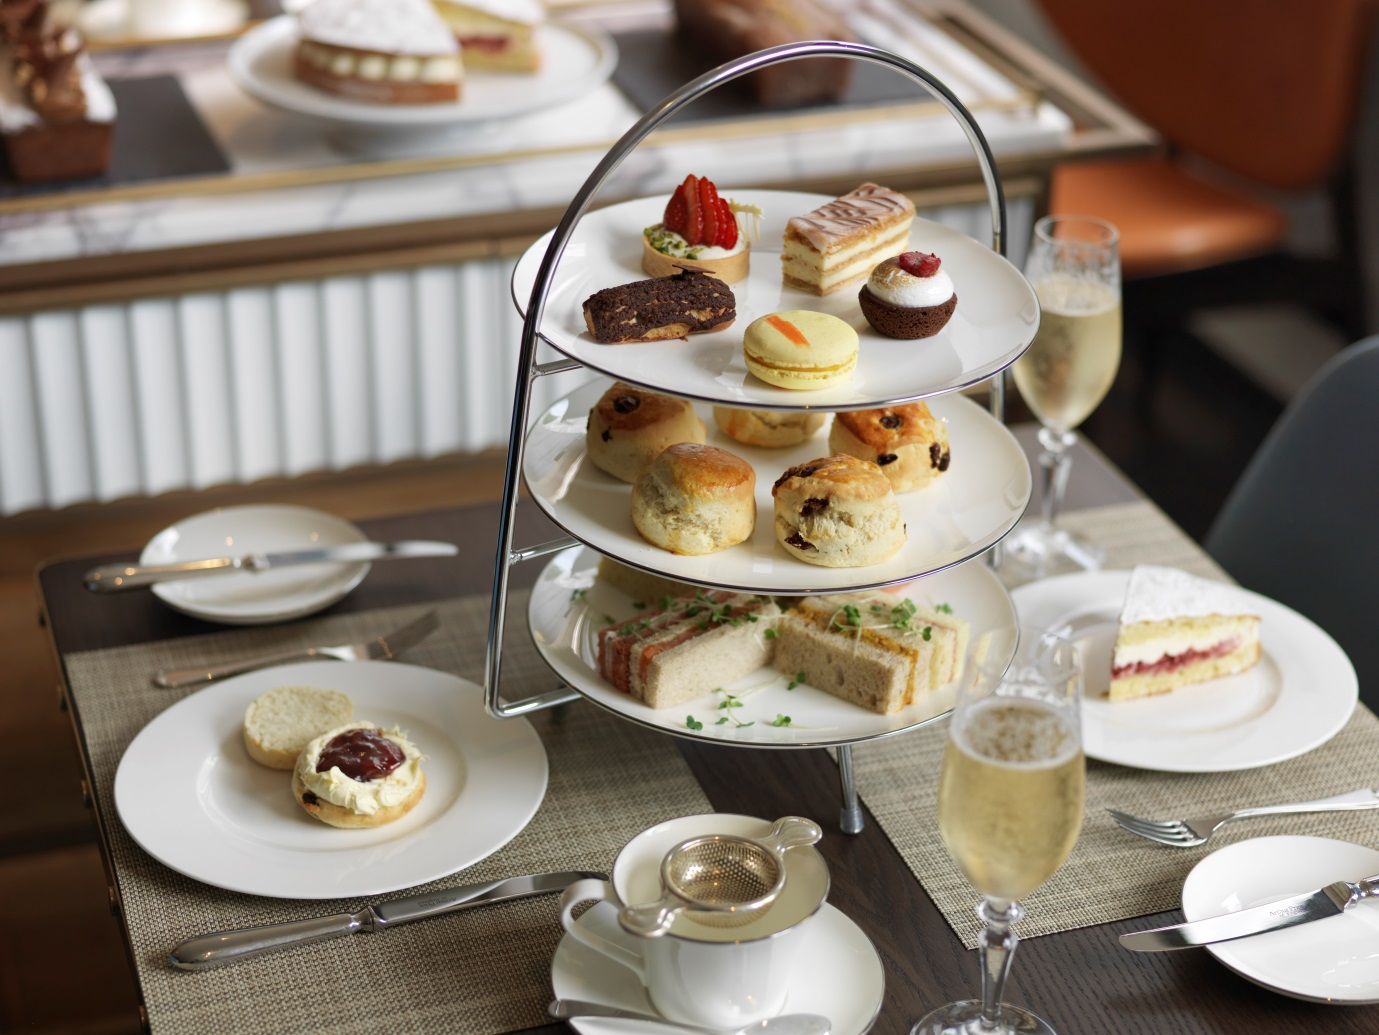 Afternoon Tea at The Athenaeum - London